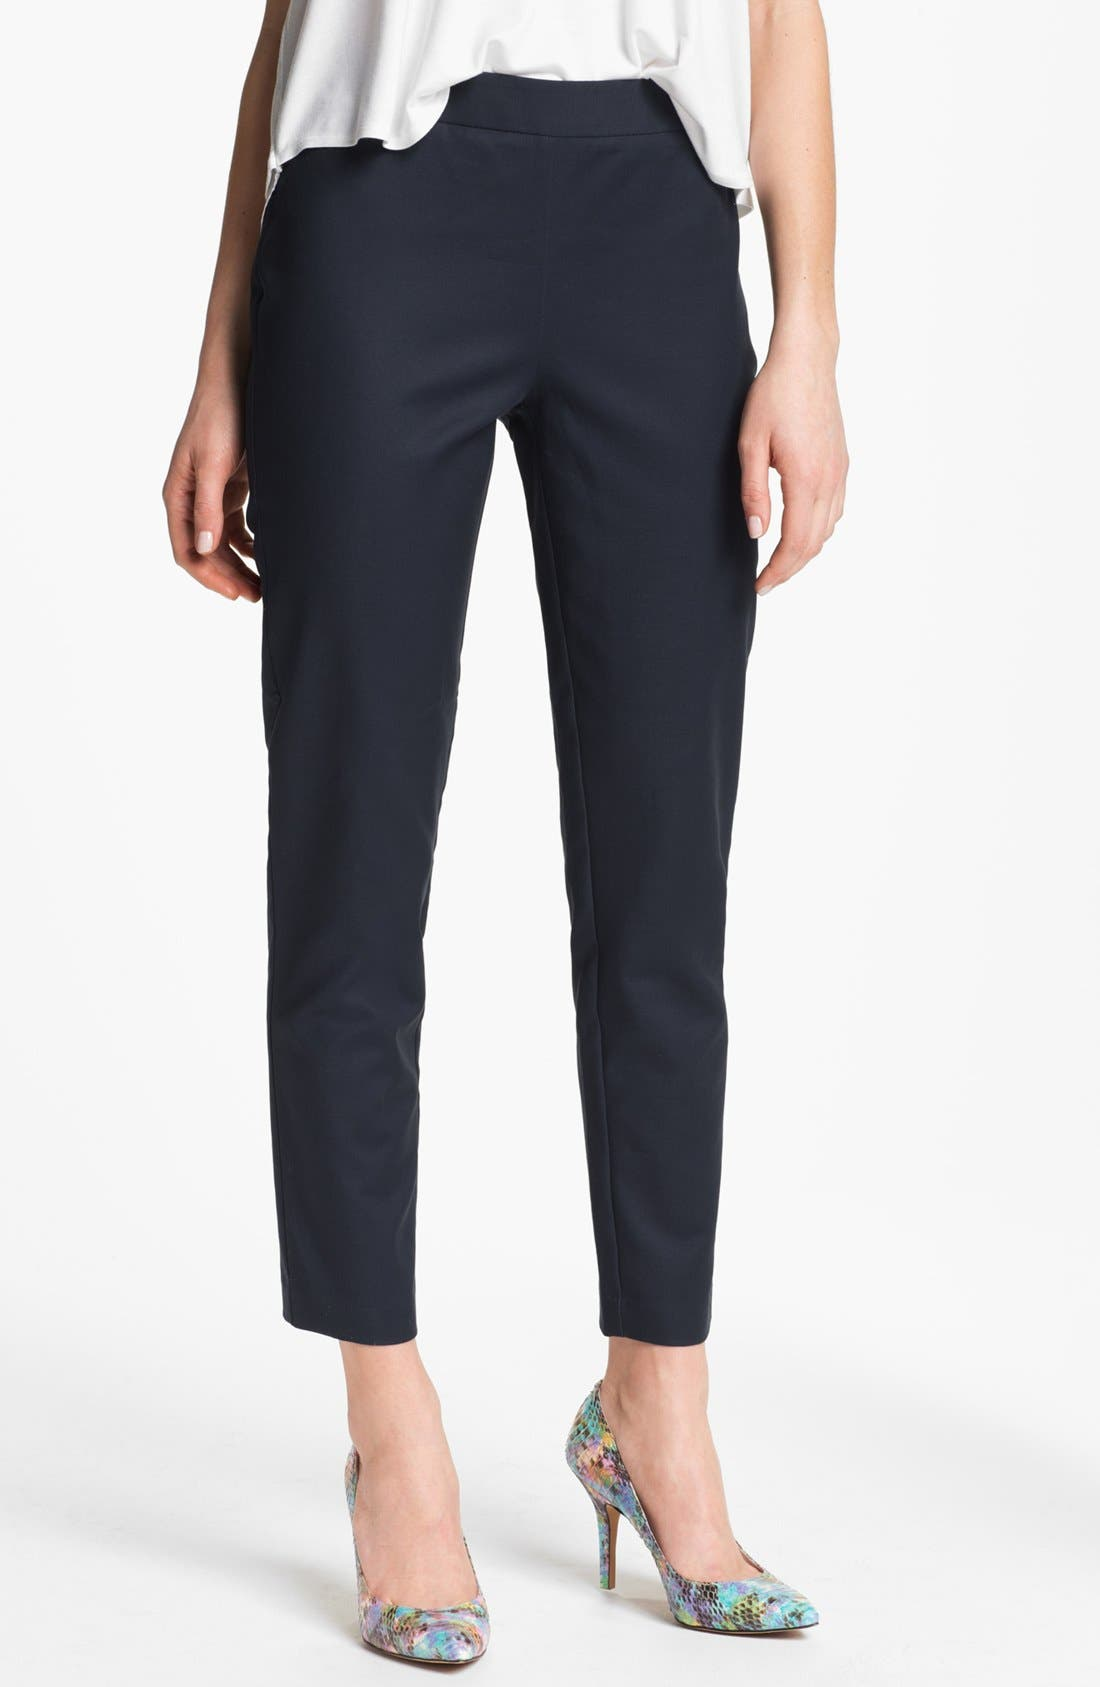 Alternate Image 1 Selected - Kenneth Cole New York 'Khloee' Cigarette Pants